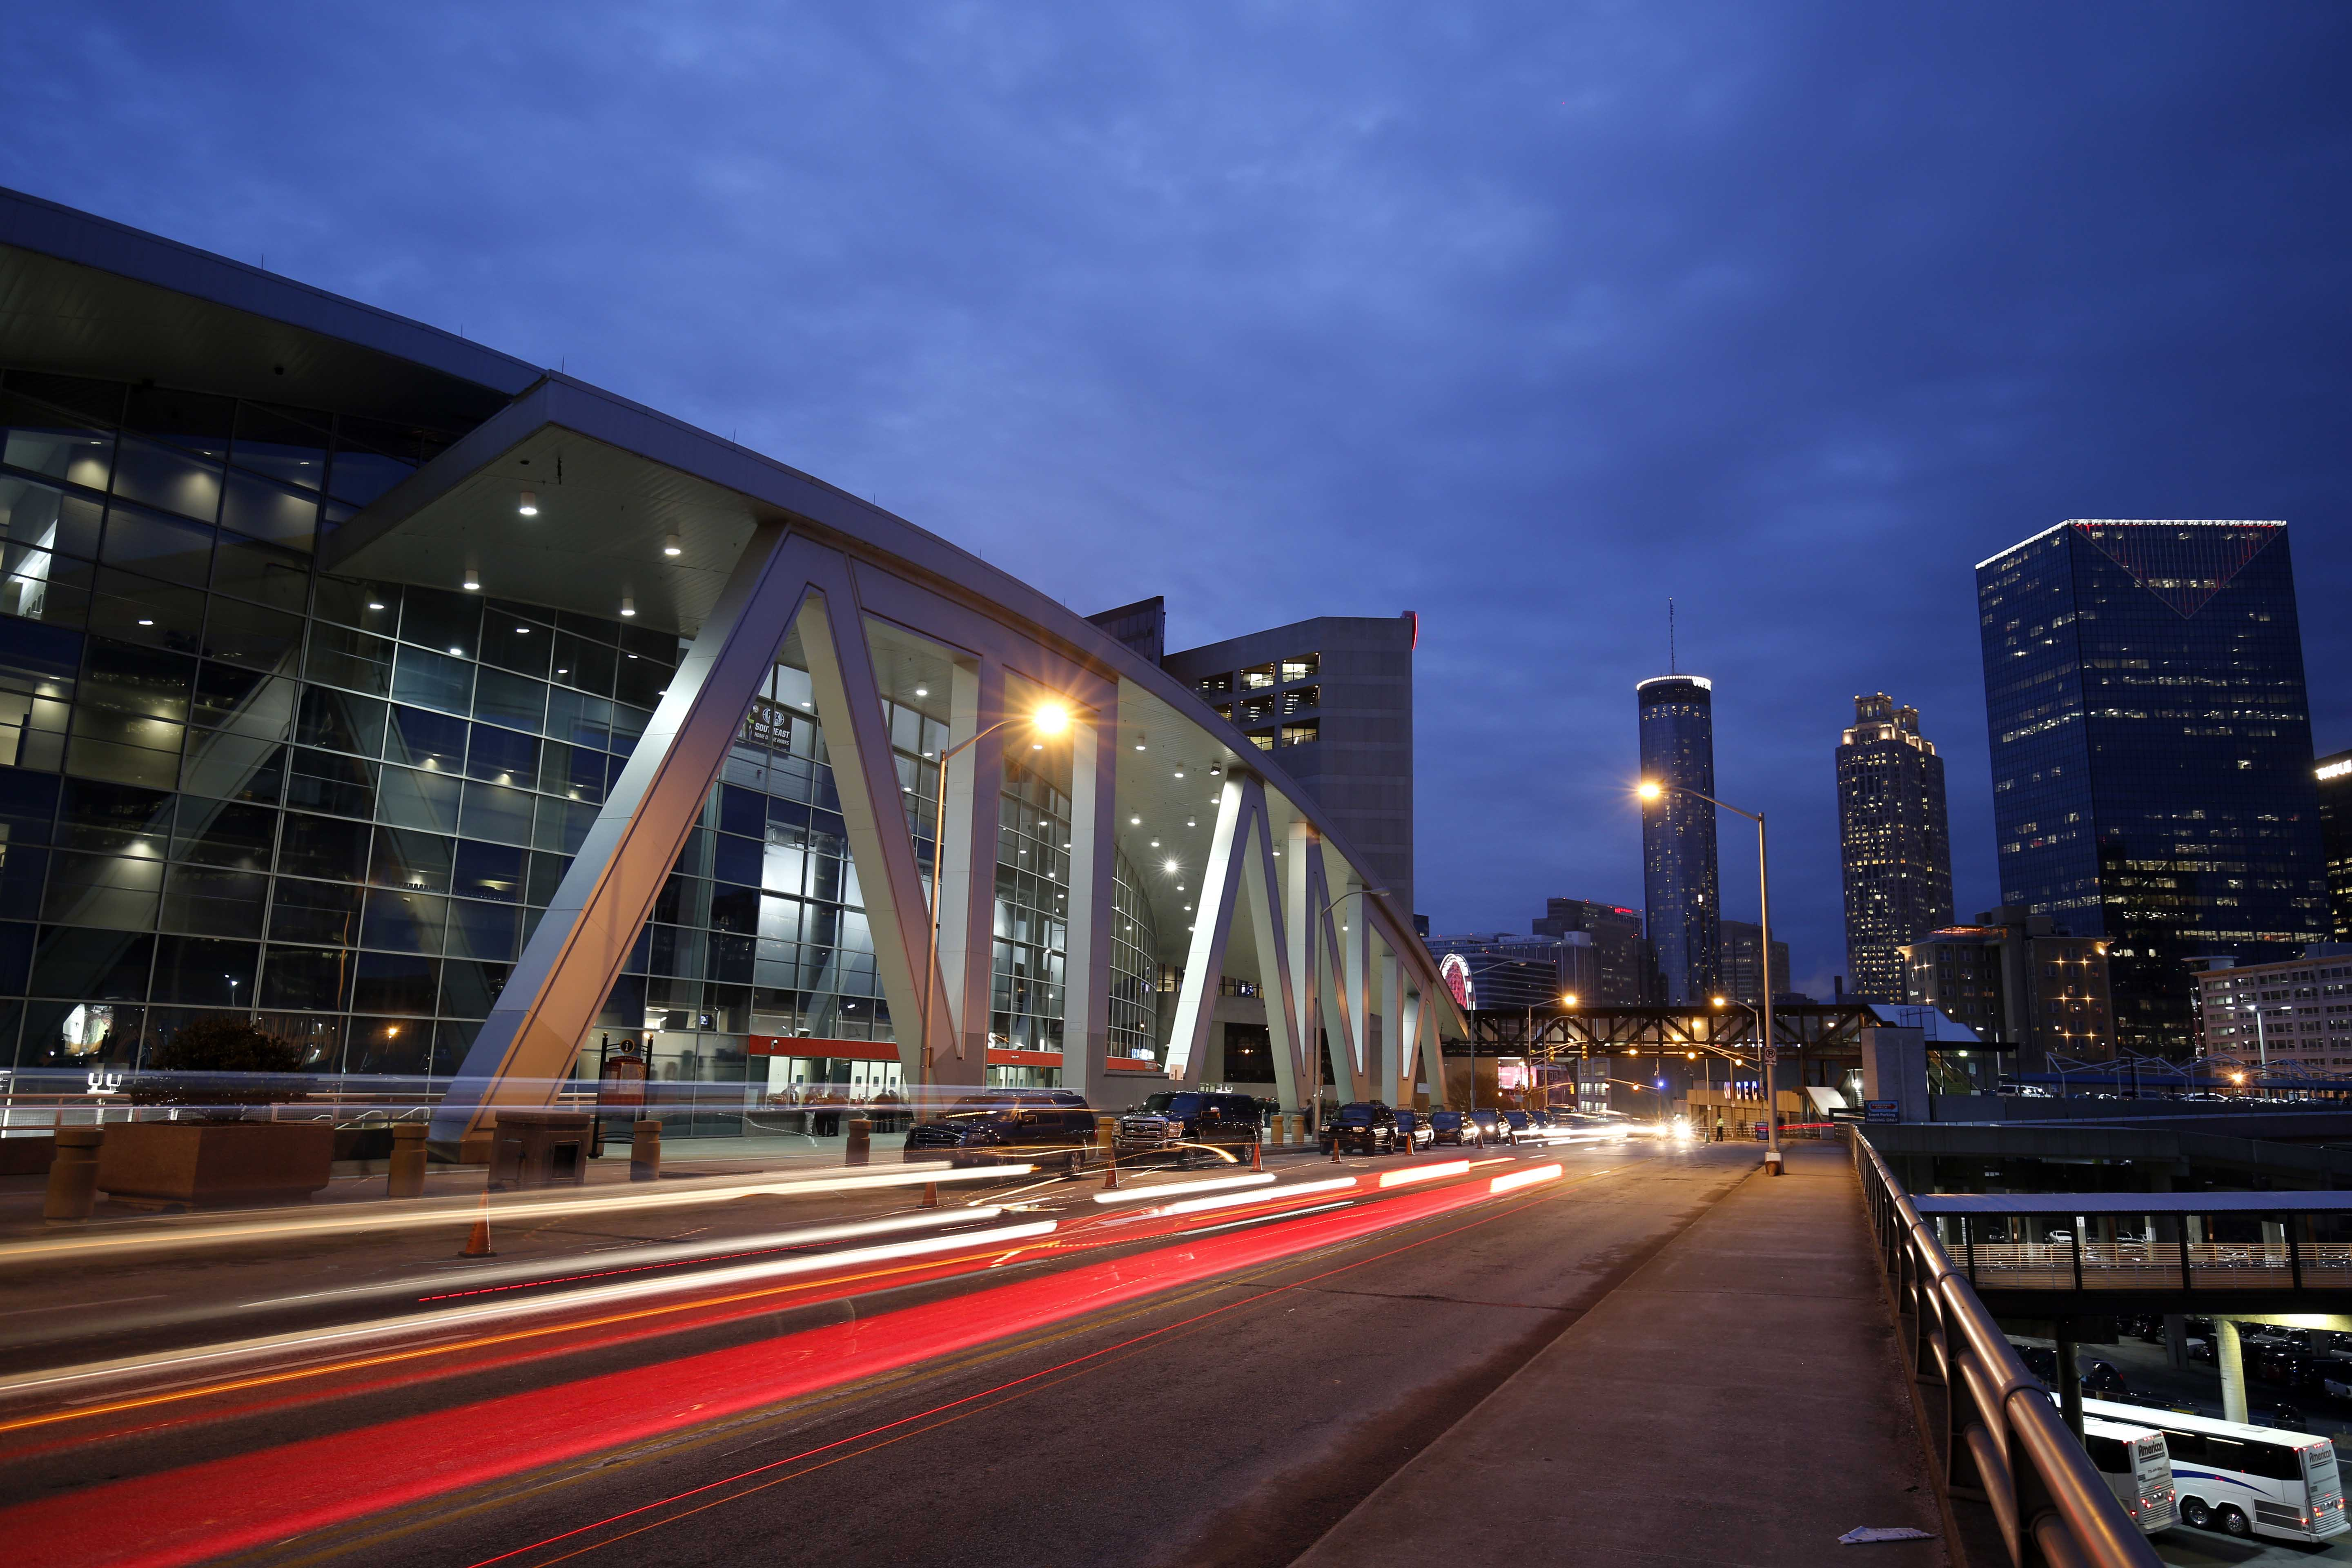 writing african history philips arena